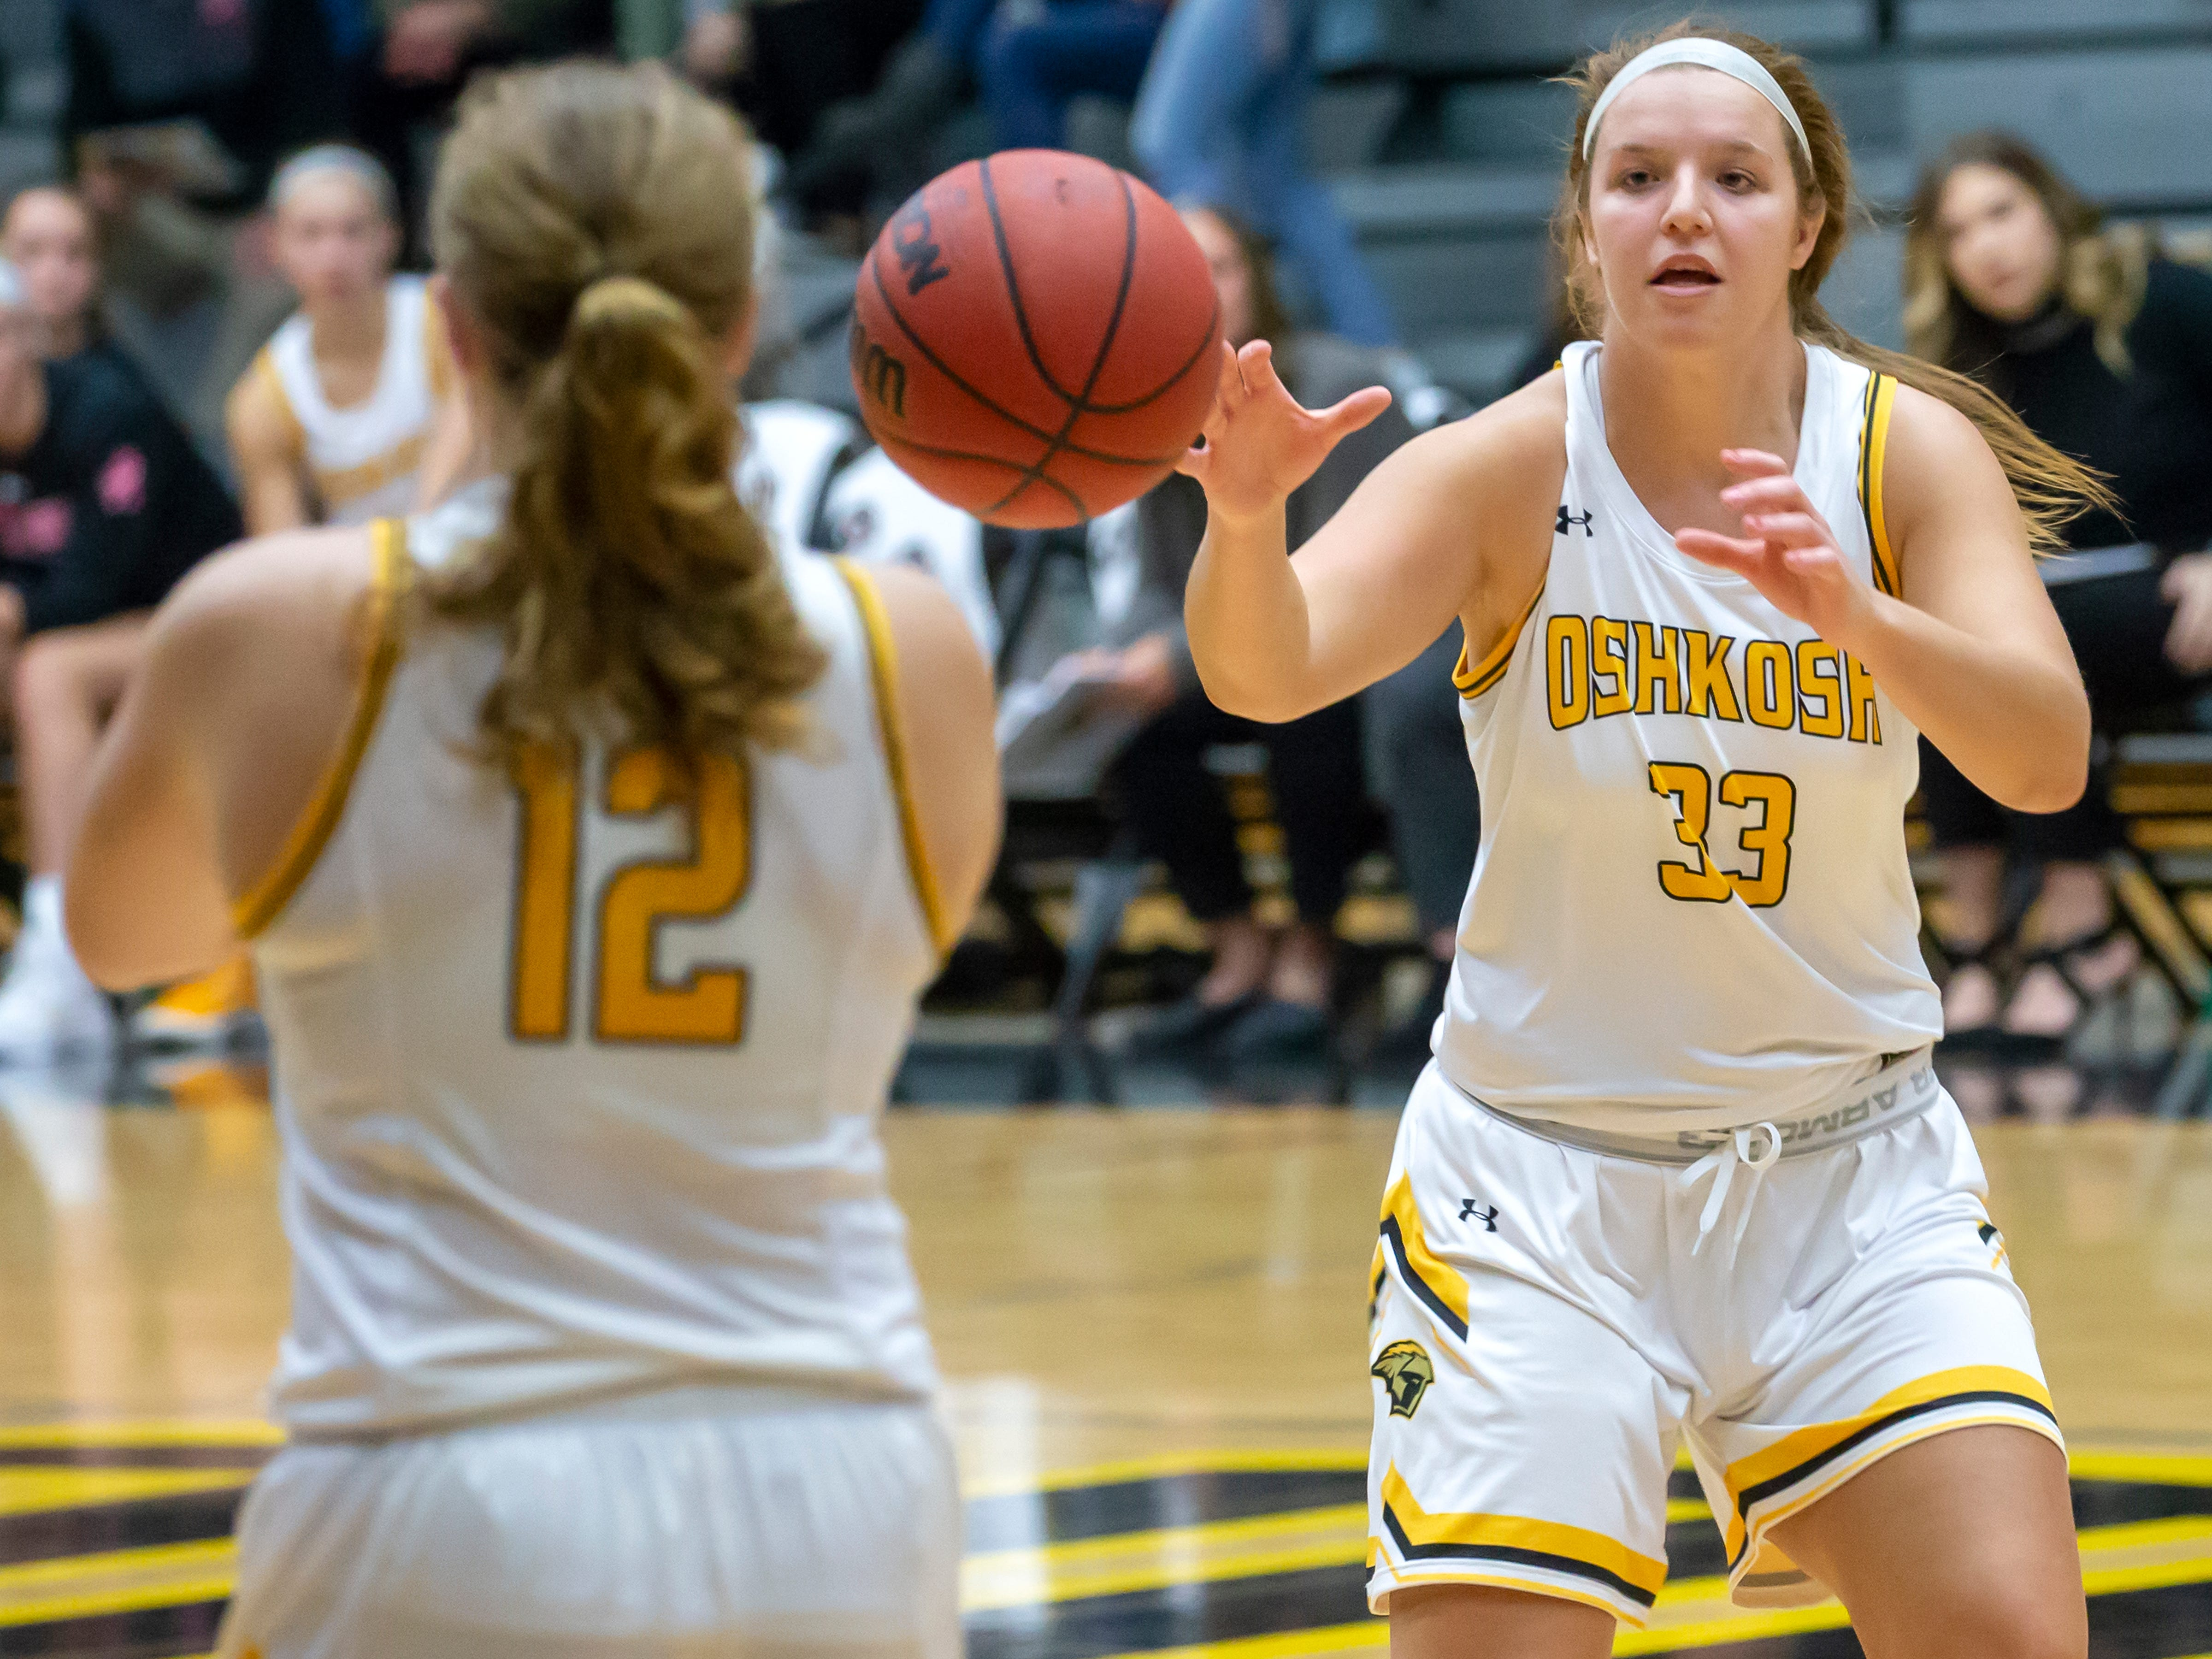 UW-Oshkosh's Leah Porath throws a pass to Nikki Arneson at the Kolf Sports Center on Saturday, January 5, 2019.